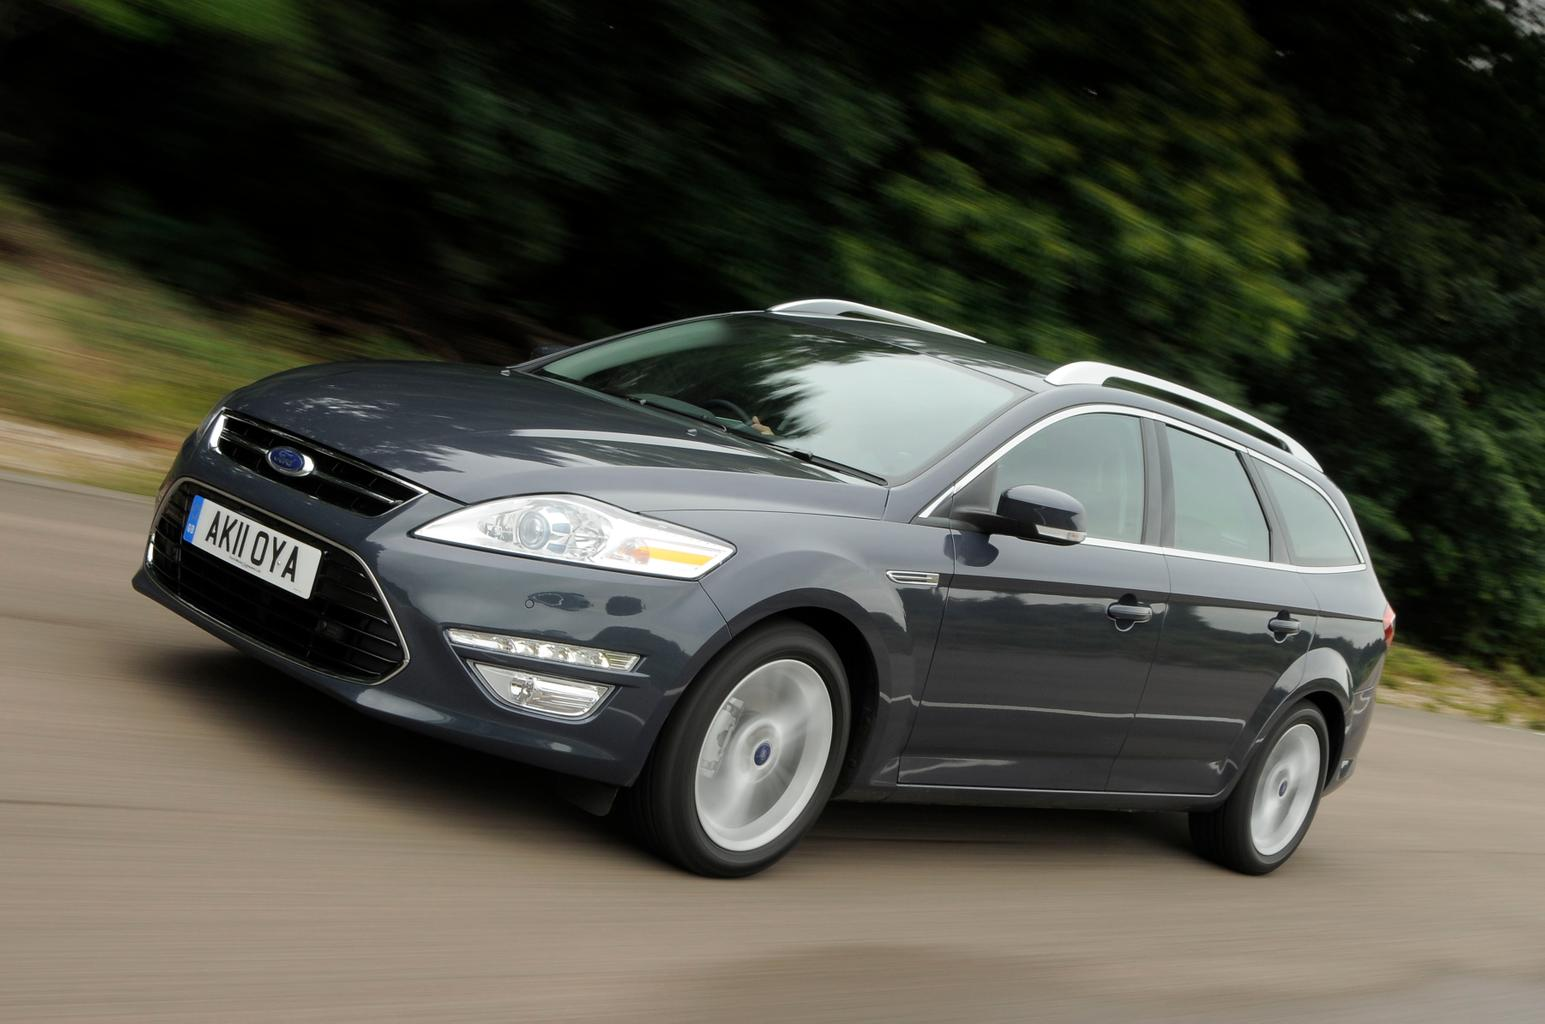 Used test – enormous estates: Ford Mondeo vs Skoda Superb vs Peugeot 508